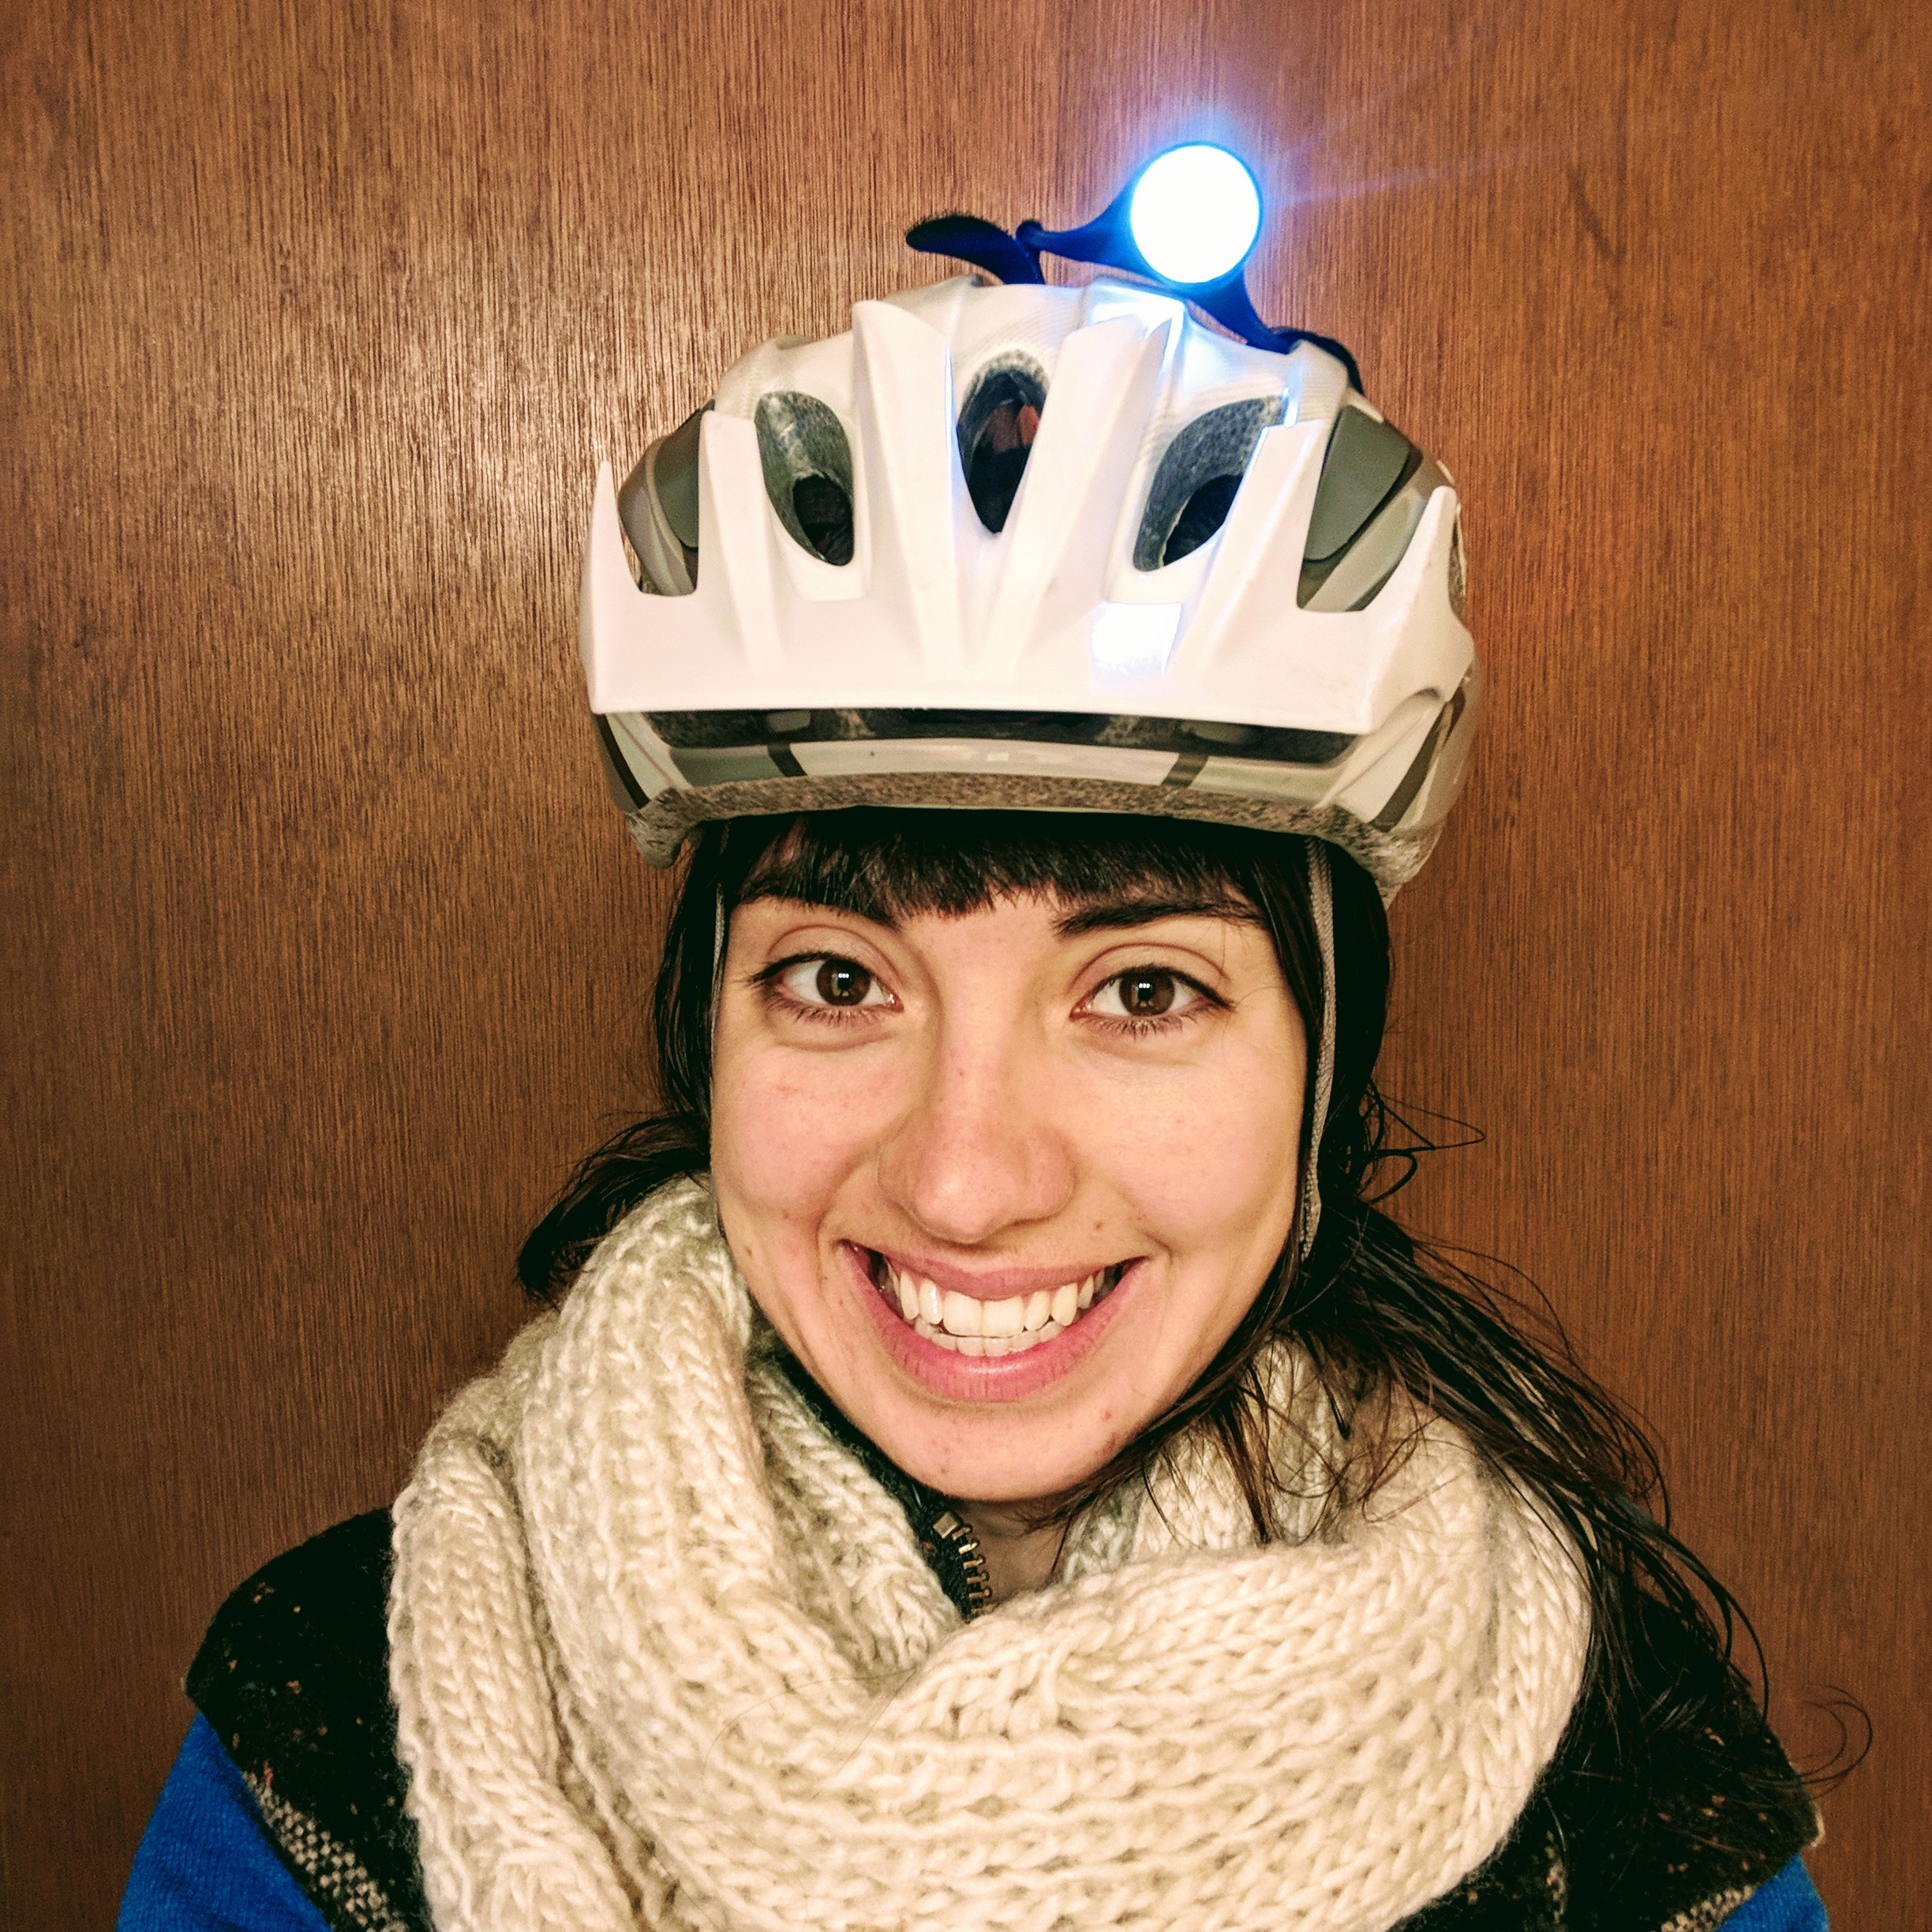 'Tis the season for helmet lights! -